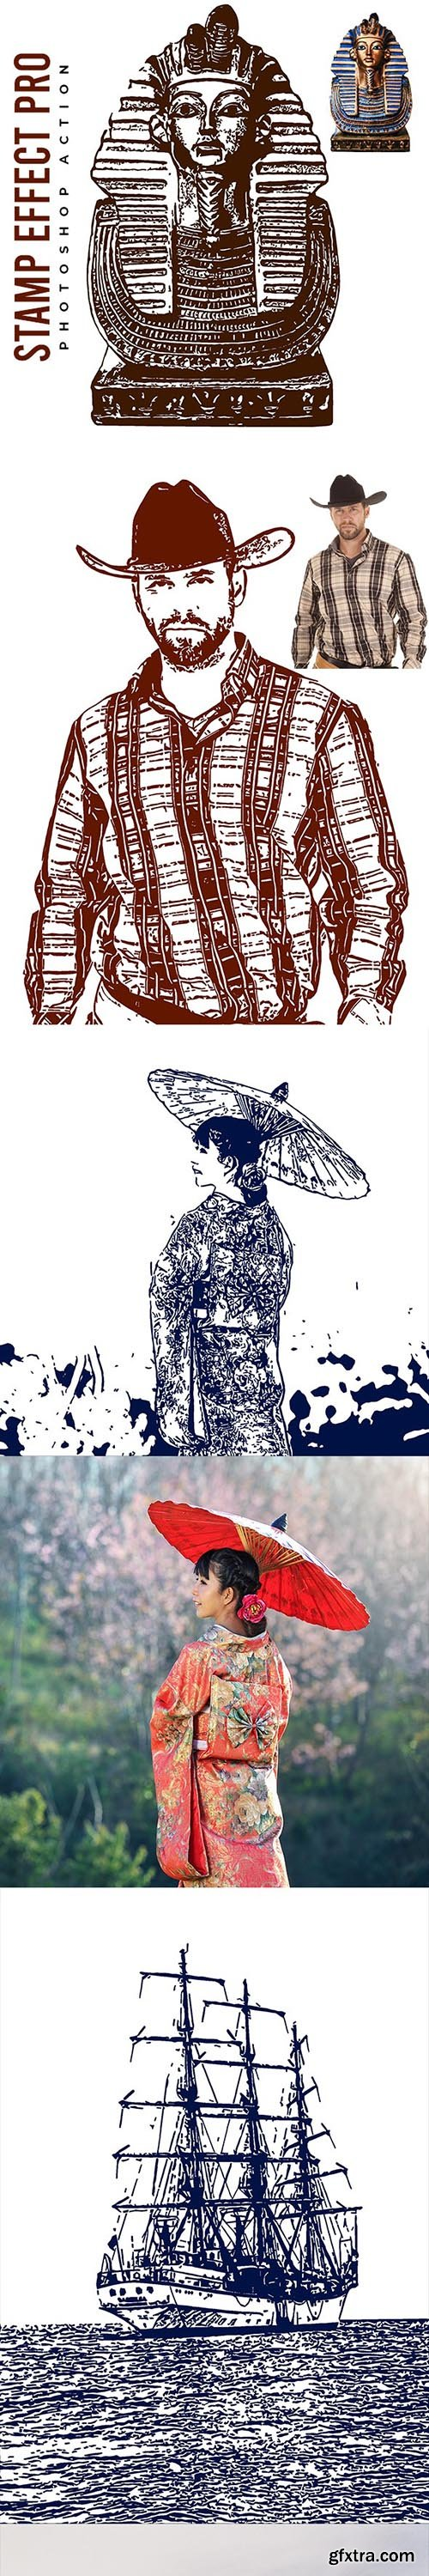 GraphicRiver - Stamp Effect Pro - Photoshop Action 26782161